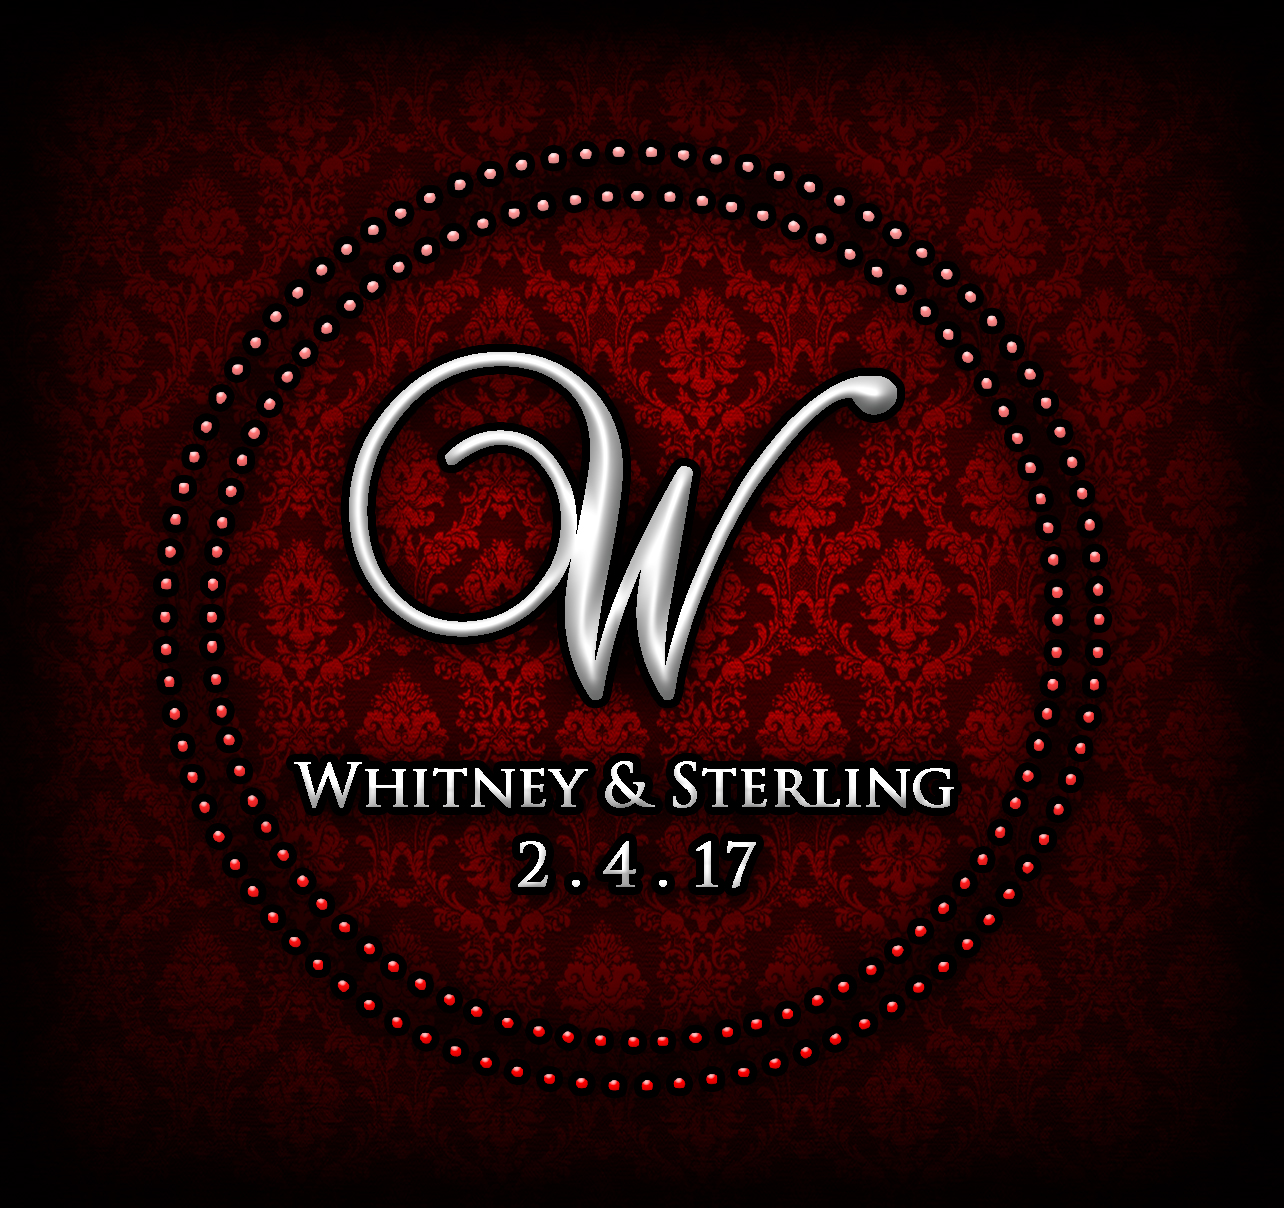 WHITNEYandSTERLING3monogram.jpg